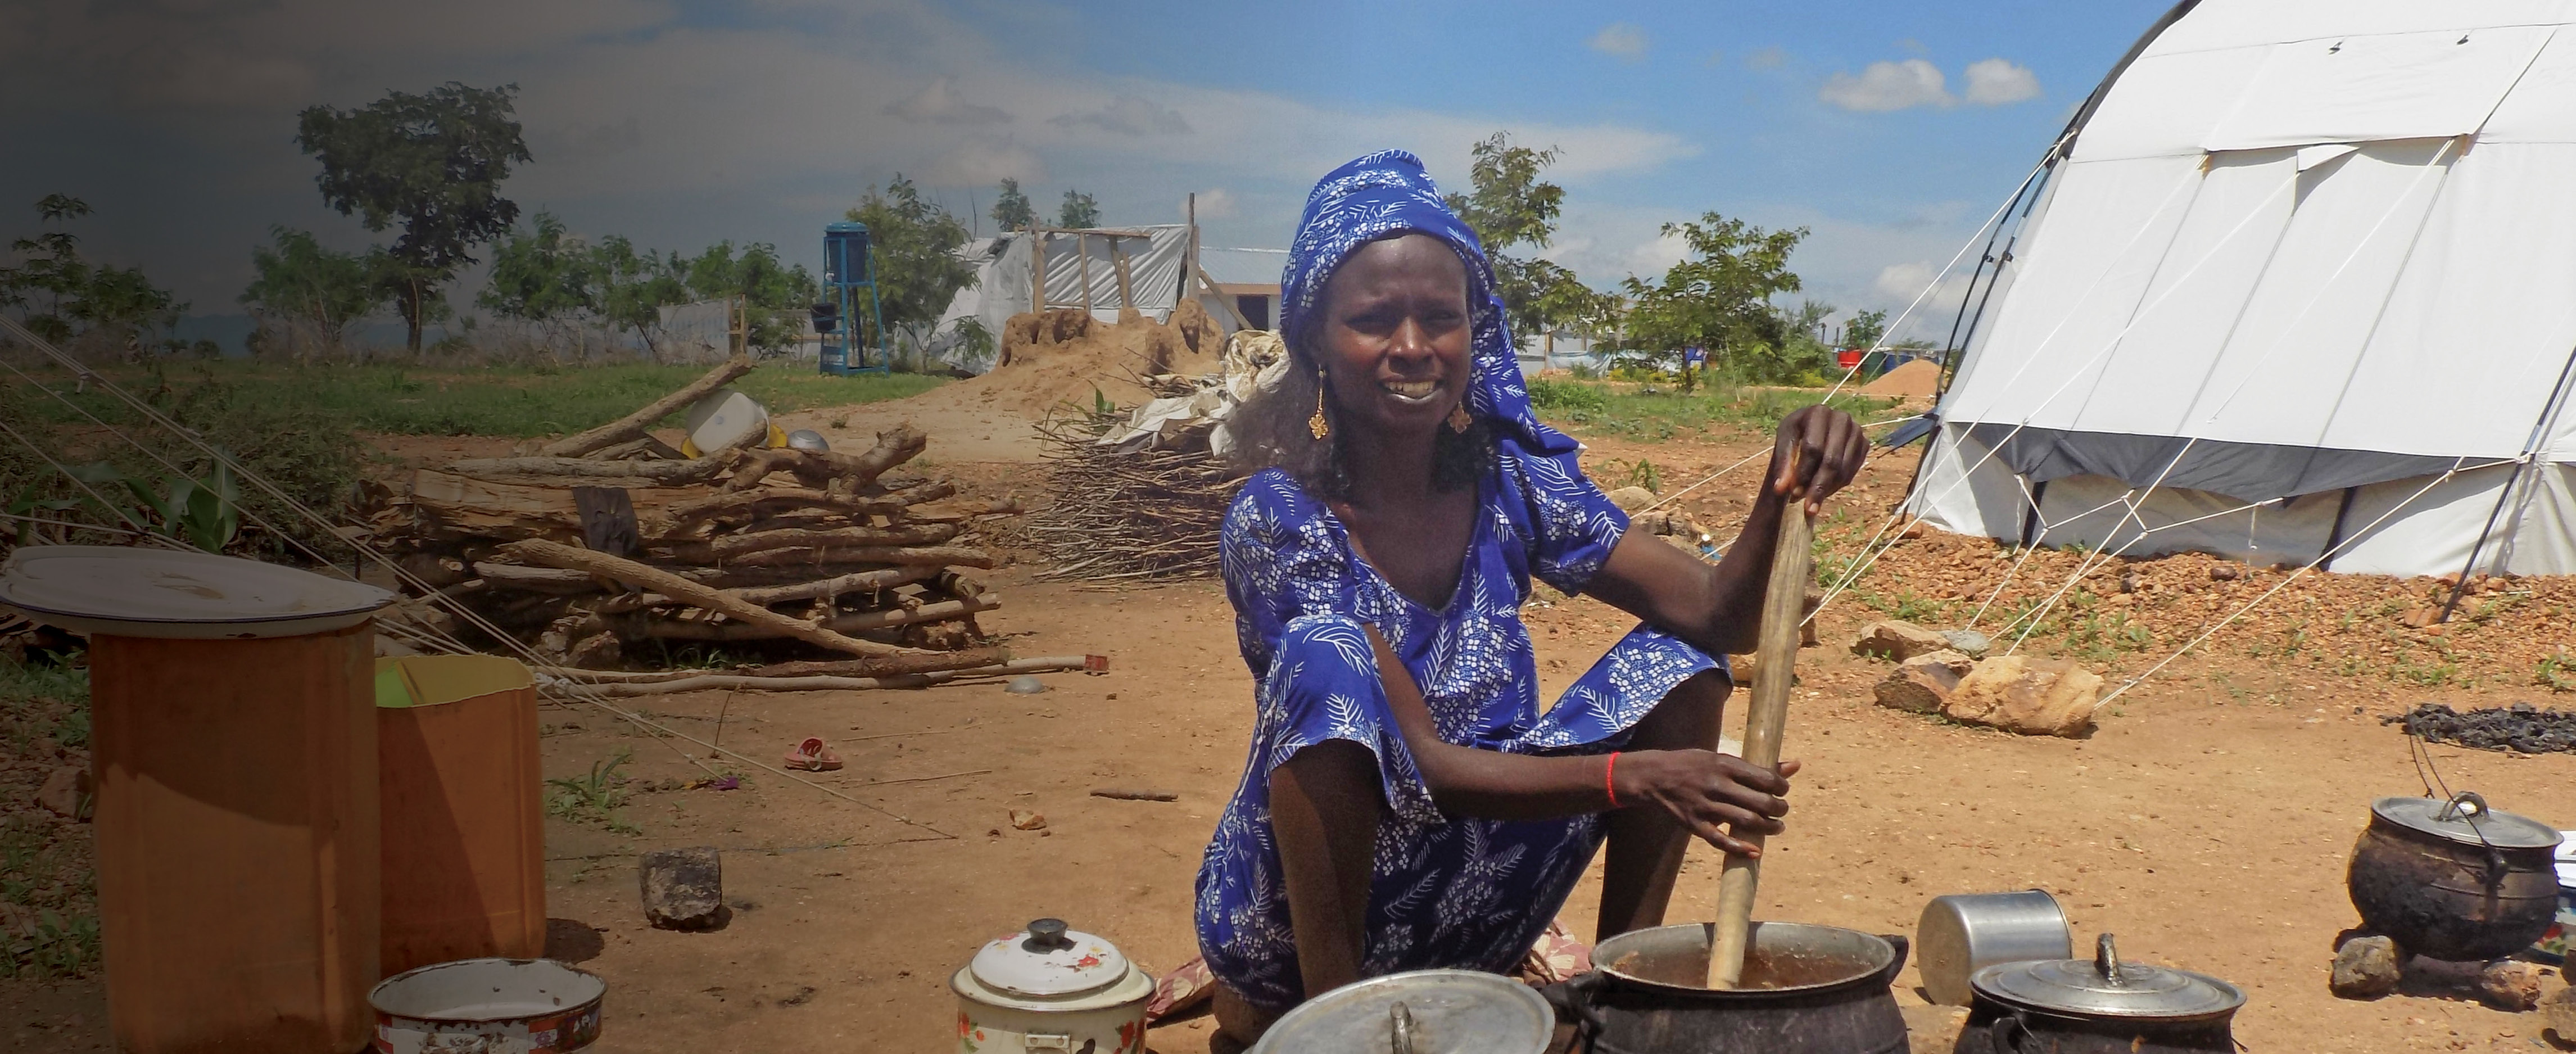 Cameroonian Woman with Cookware